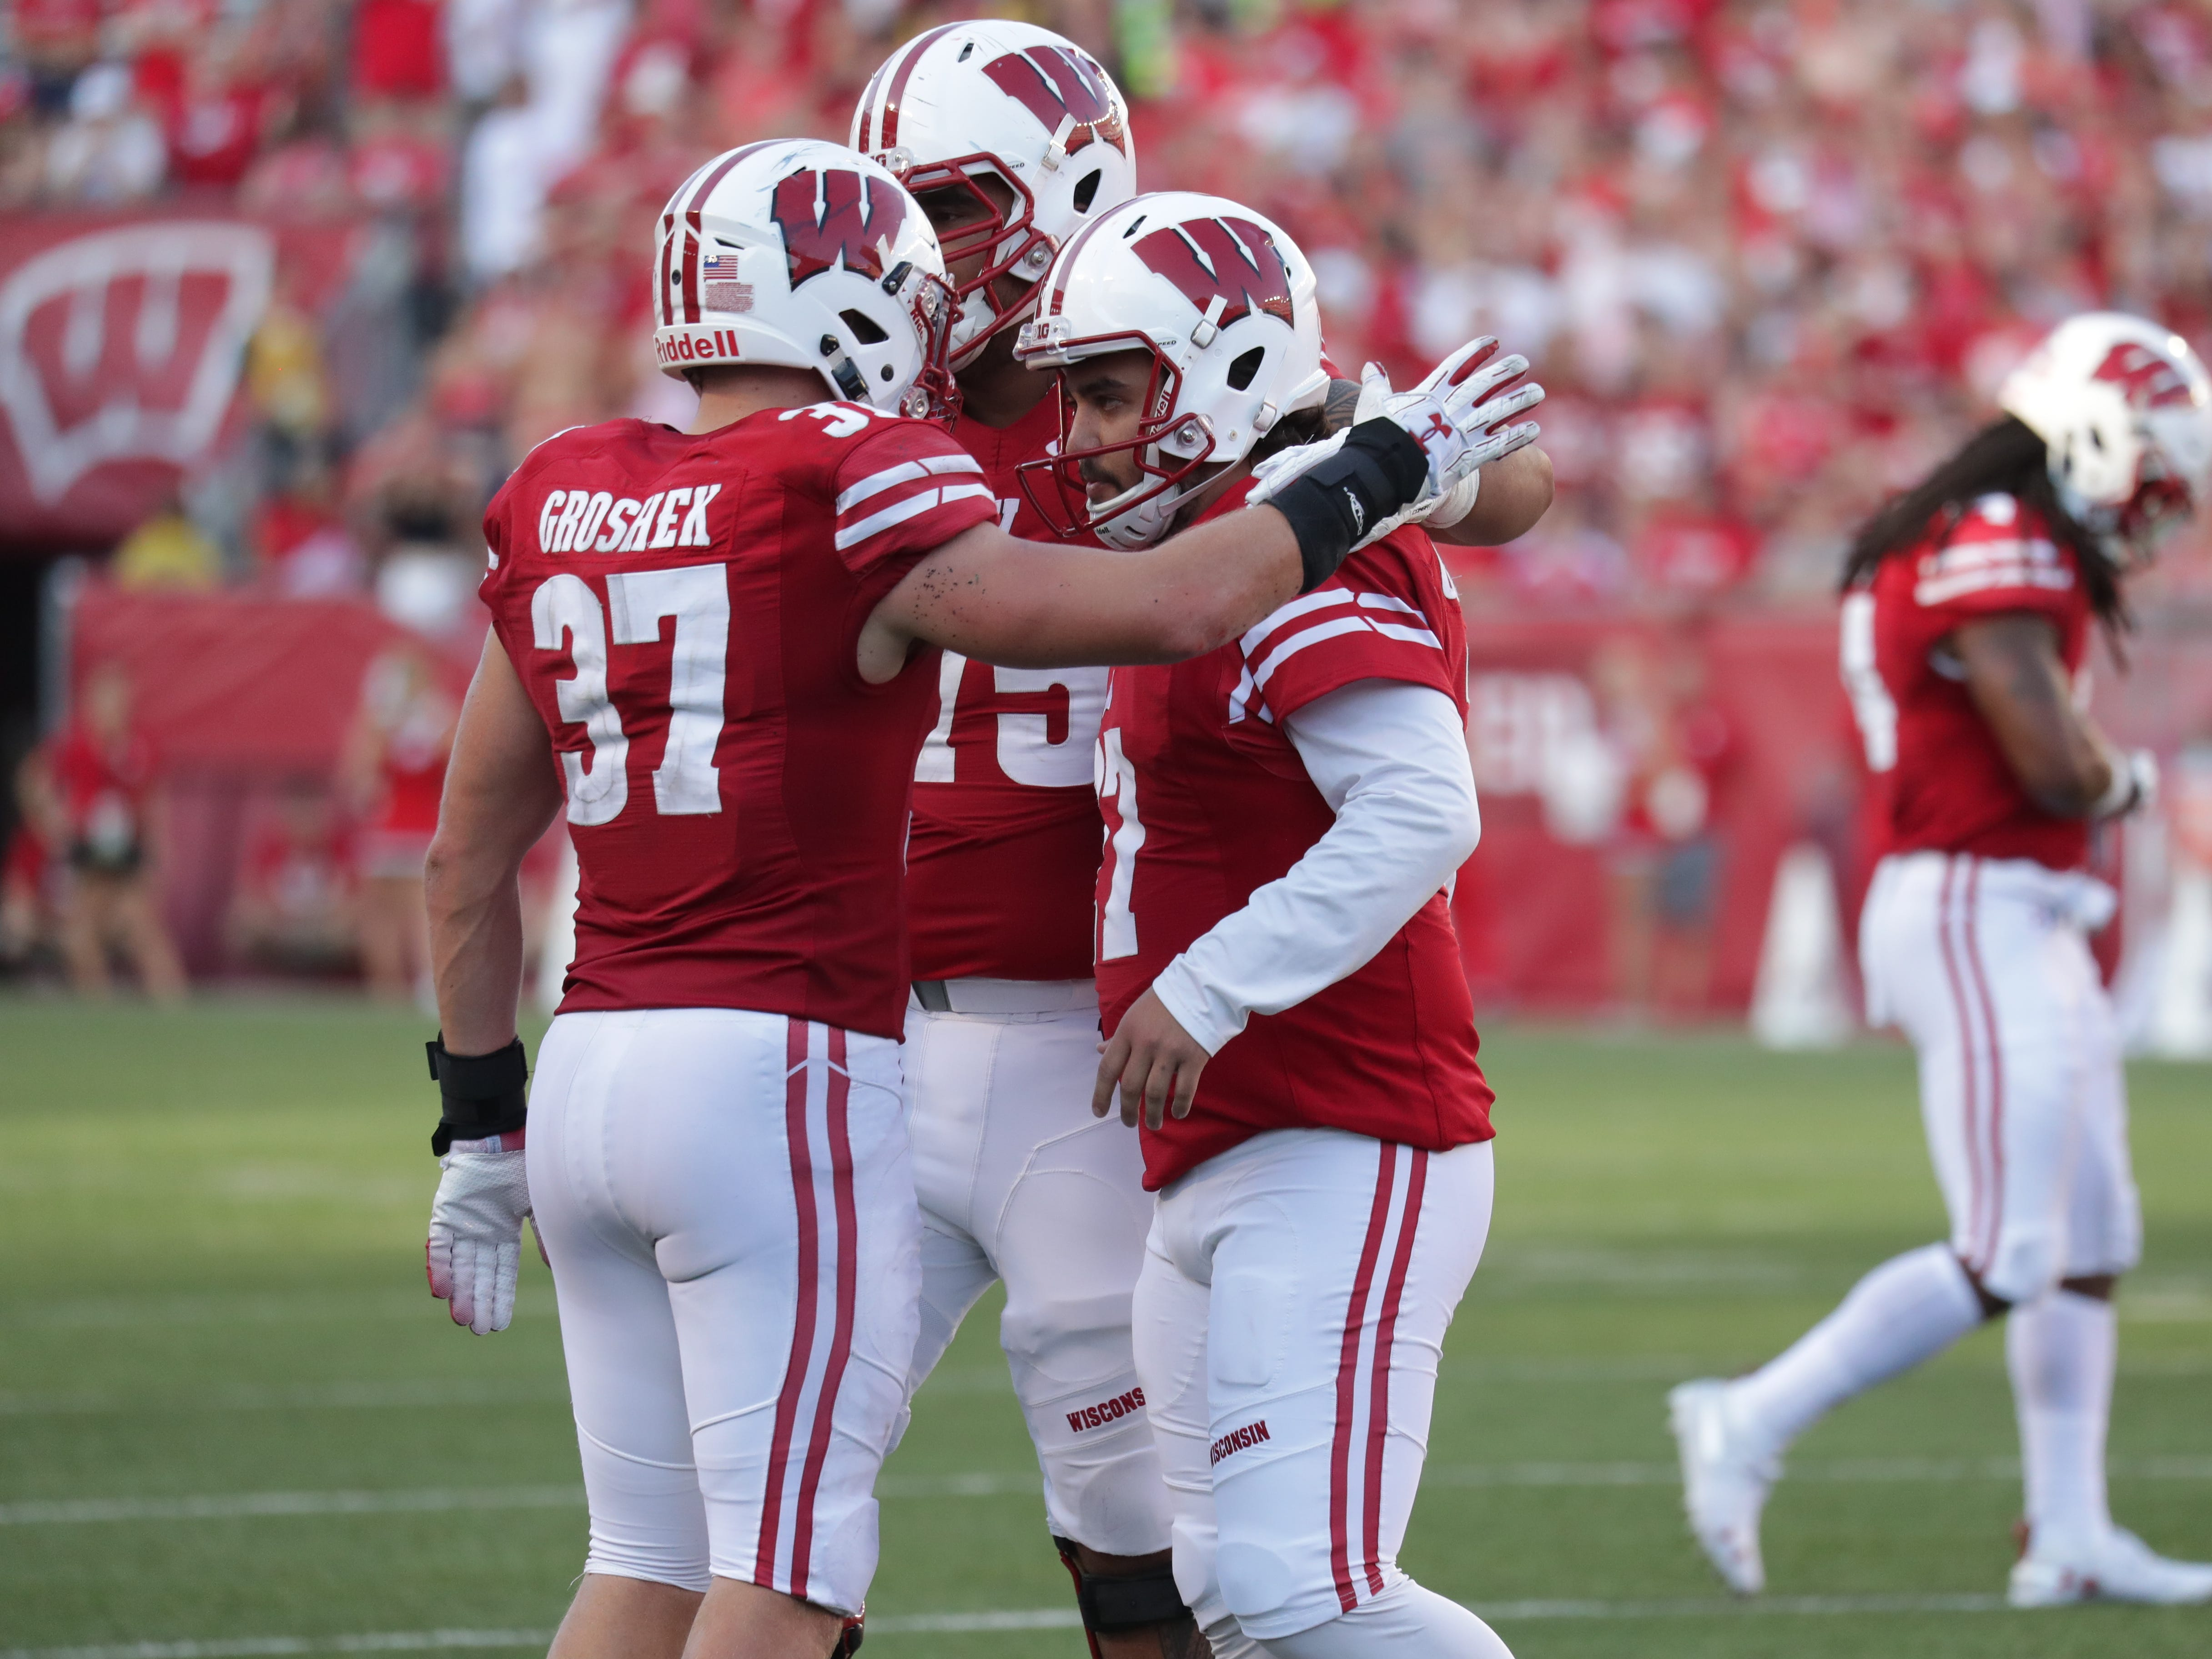 Wisconsin Badgers kicker Rafael Gaglianone gets some support from his teammates after he missed a 42-yard field goal attempt in the fourth quarter.